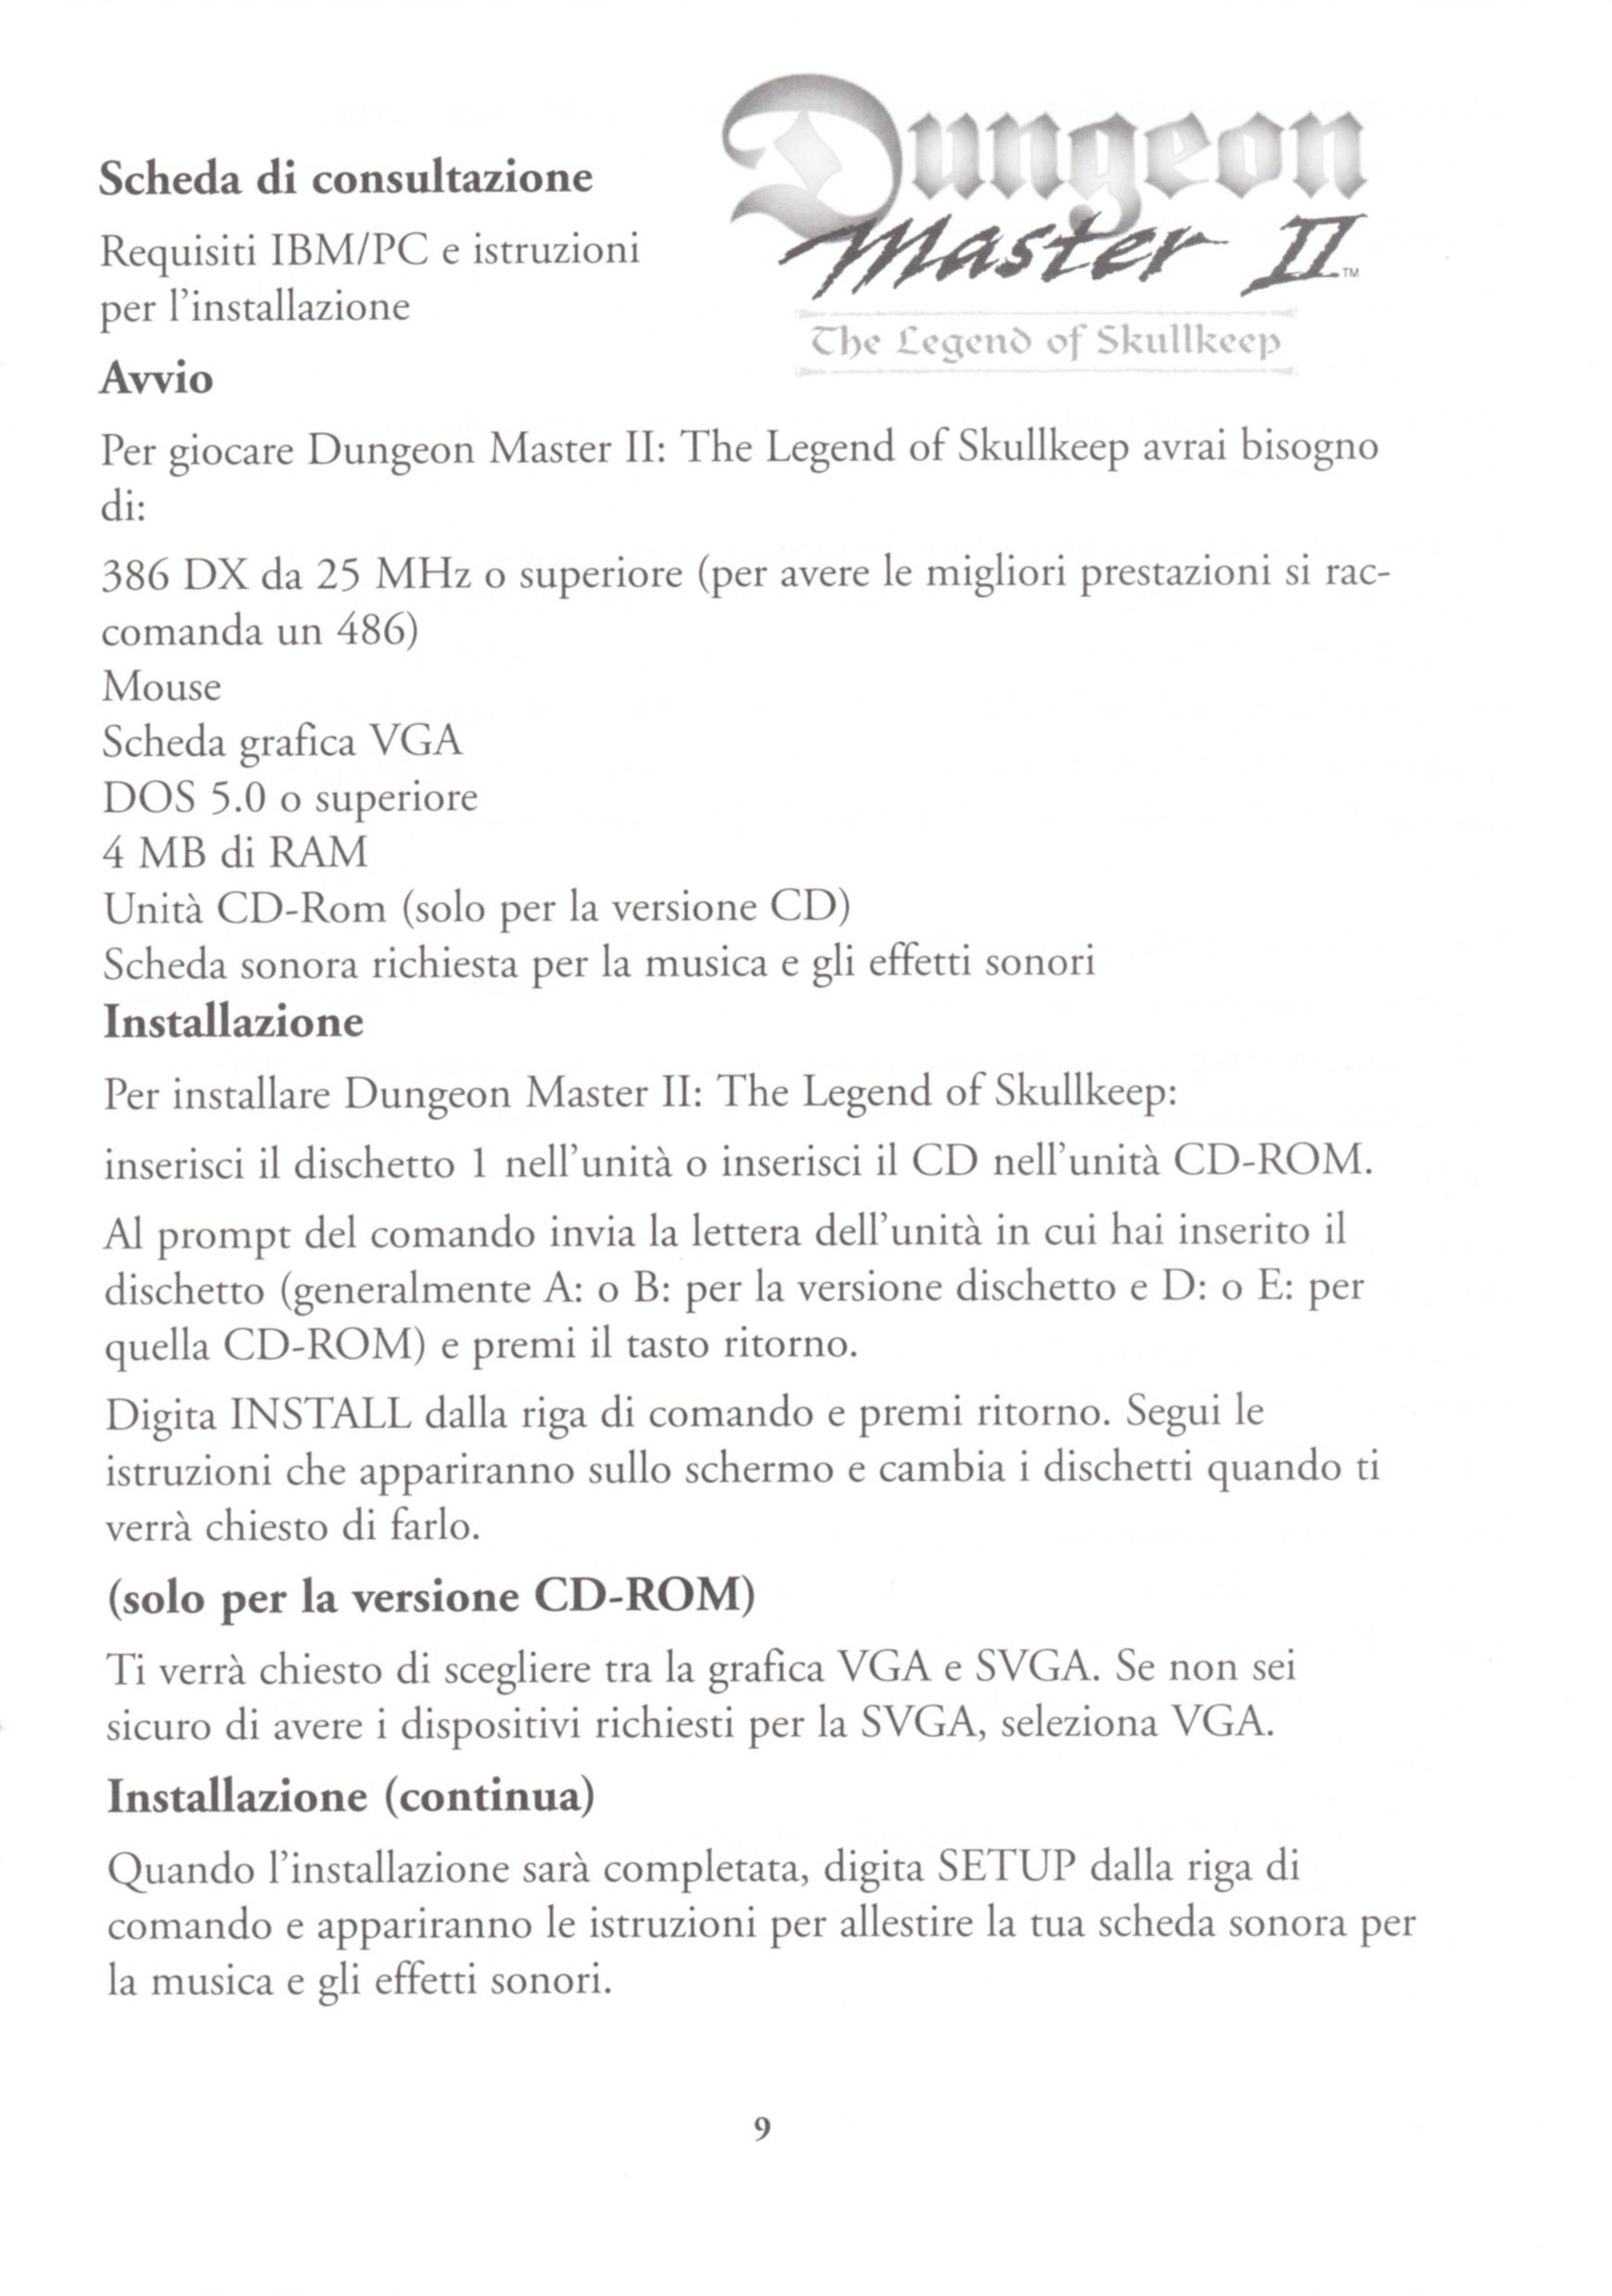 Game - Dungeon Master II - UK - PC - Floppy Version - Reference Card - Page 009 - Scan